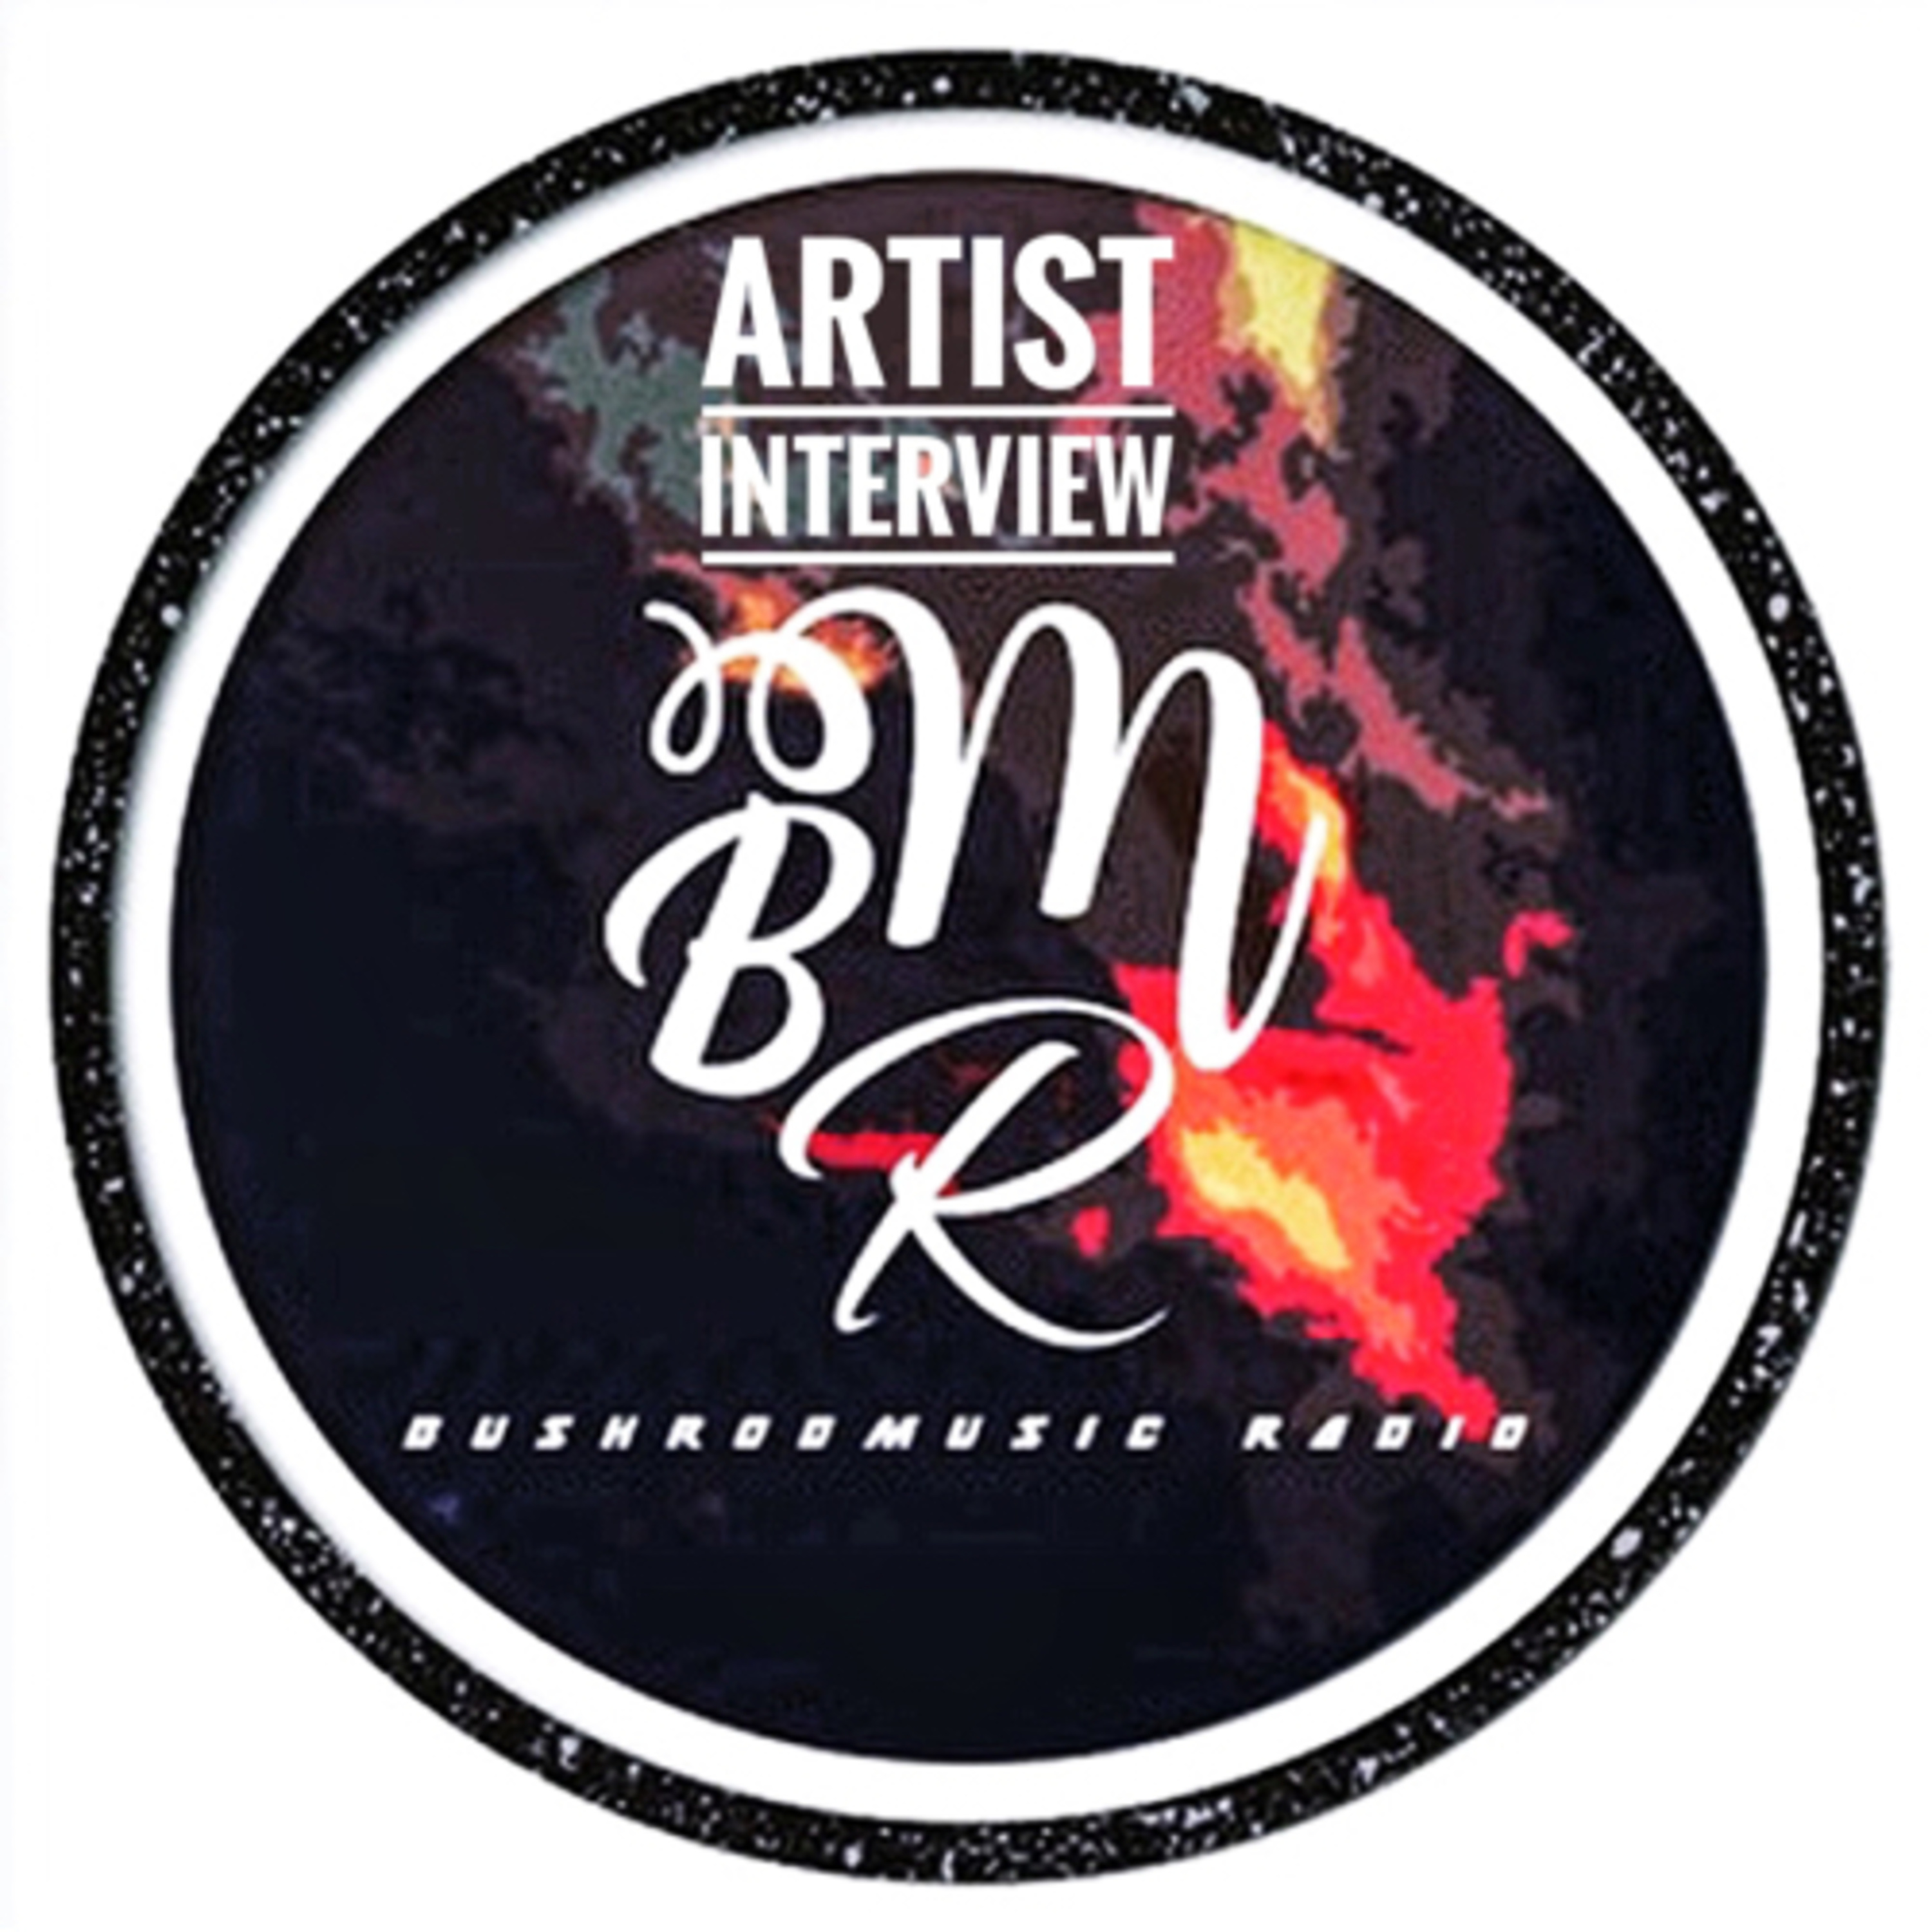 Artist Interviews Hosted by BushrodMusic Radio